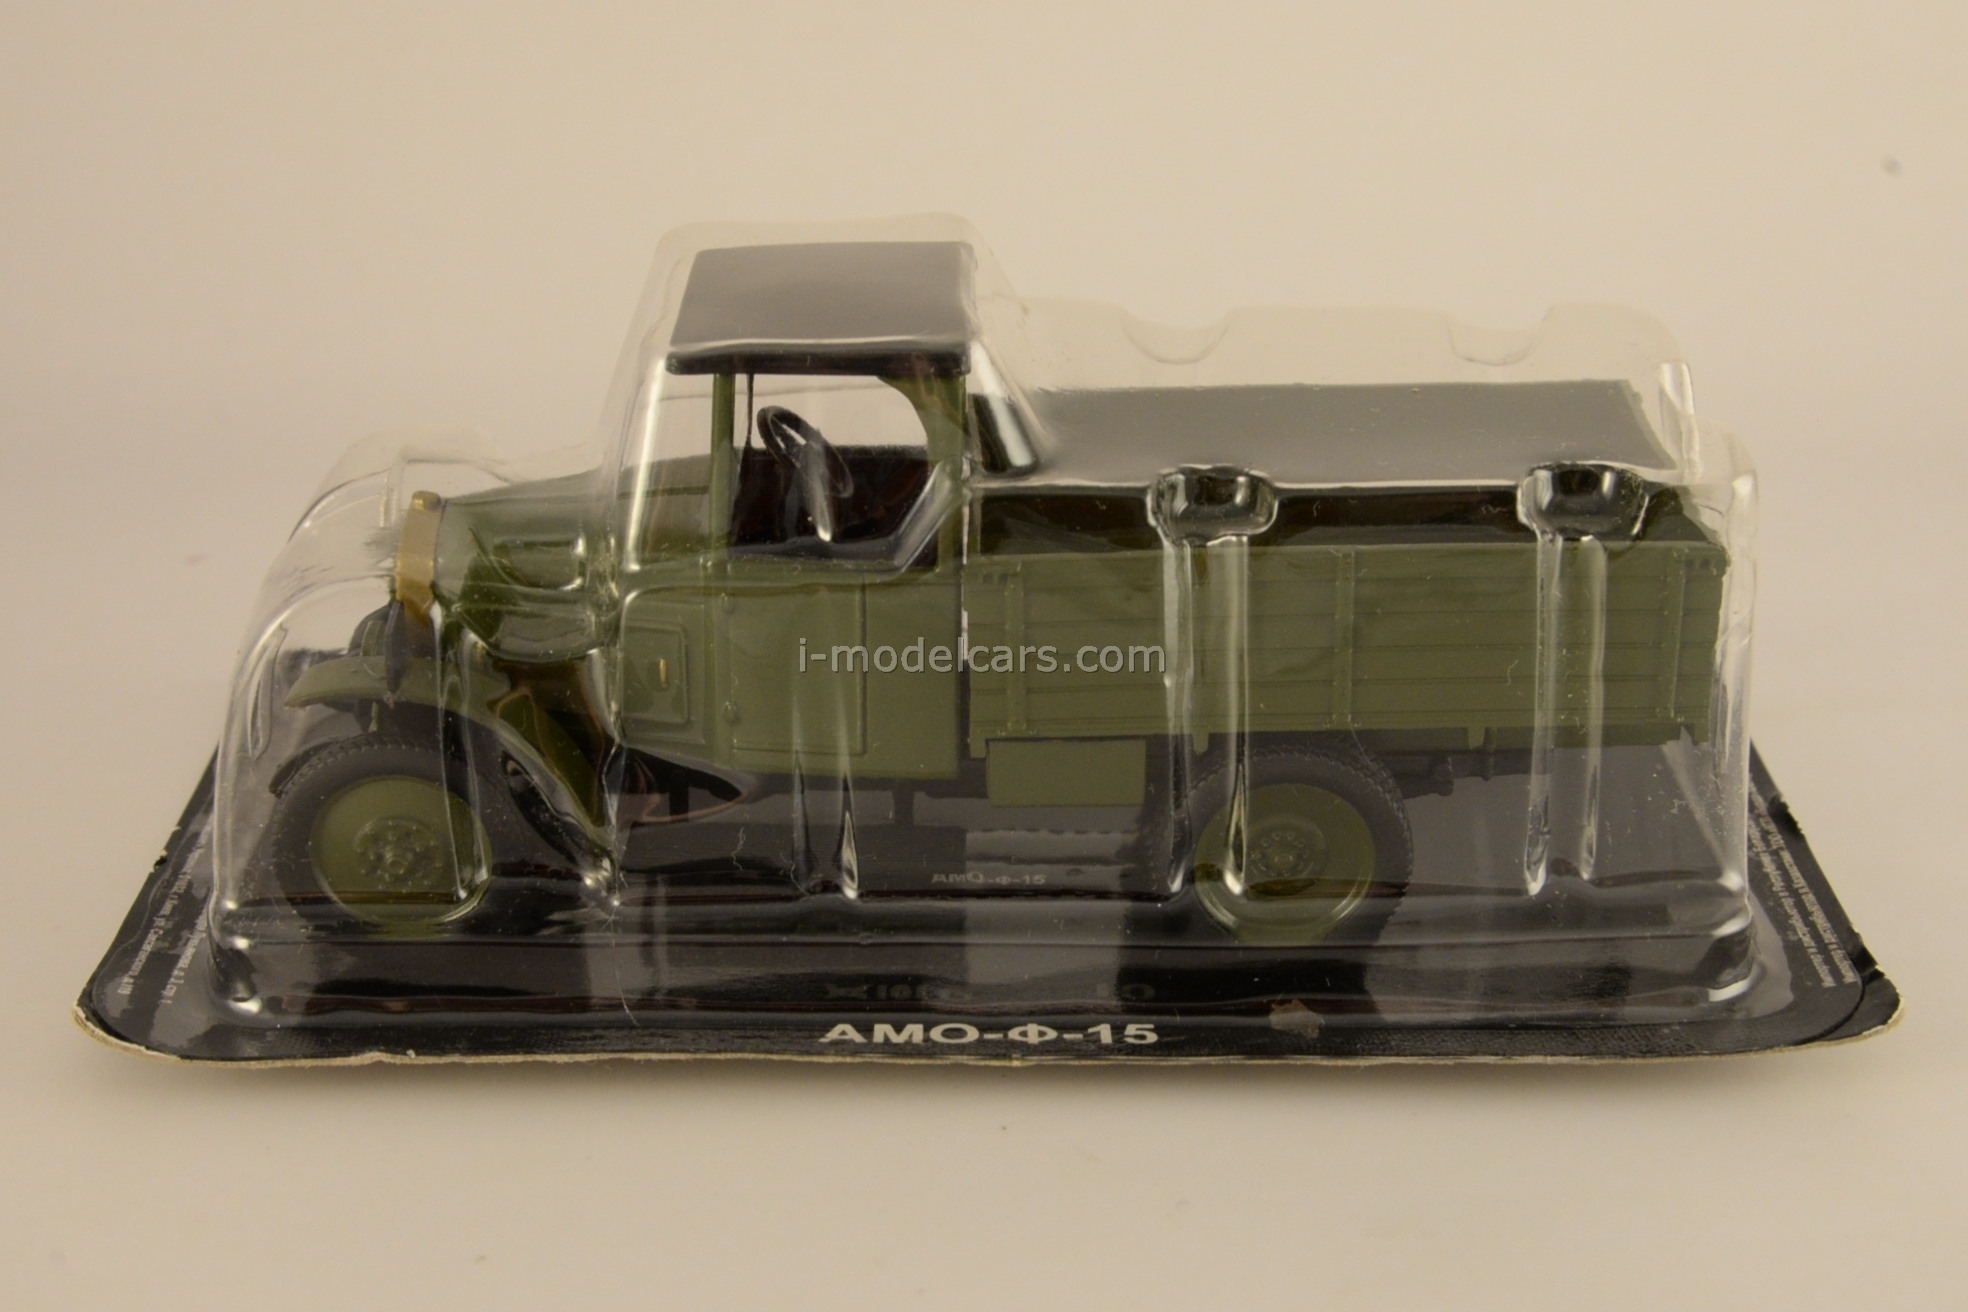 USSR cars: models and photos